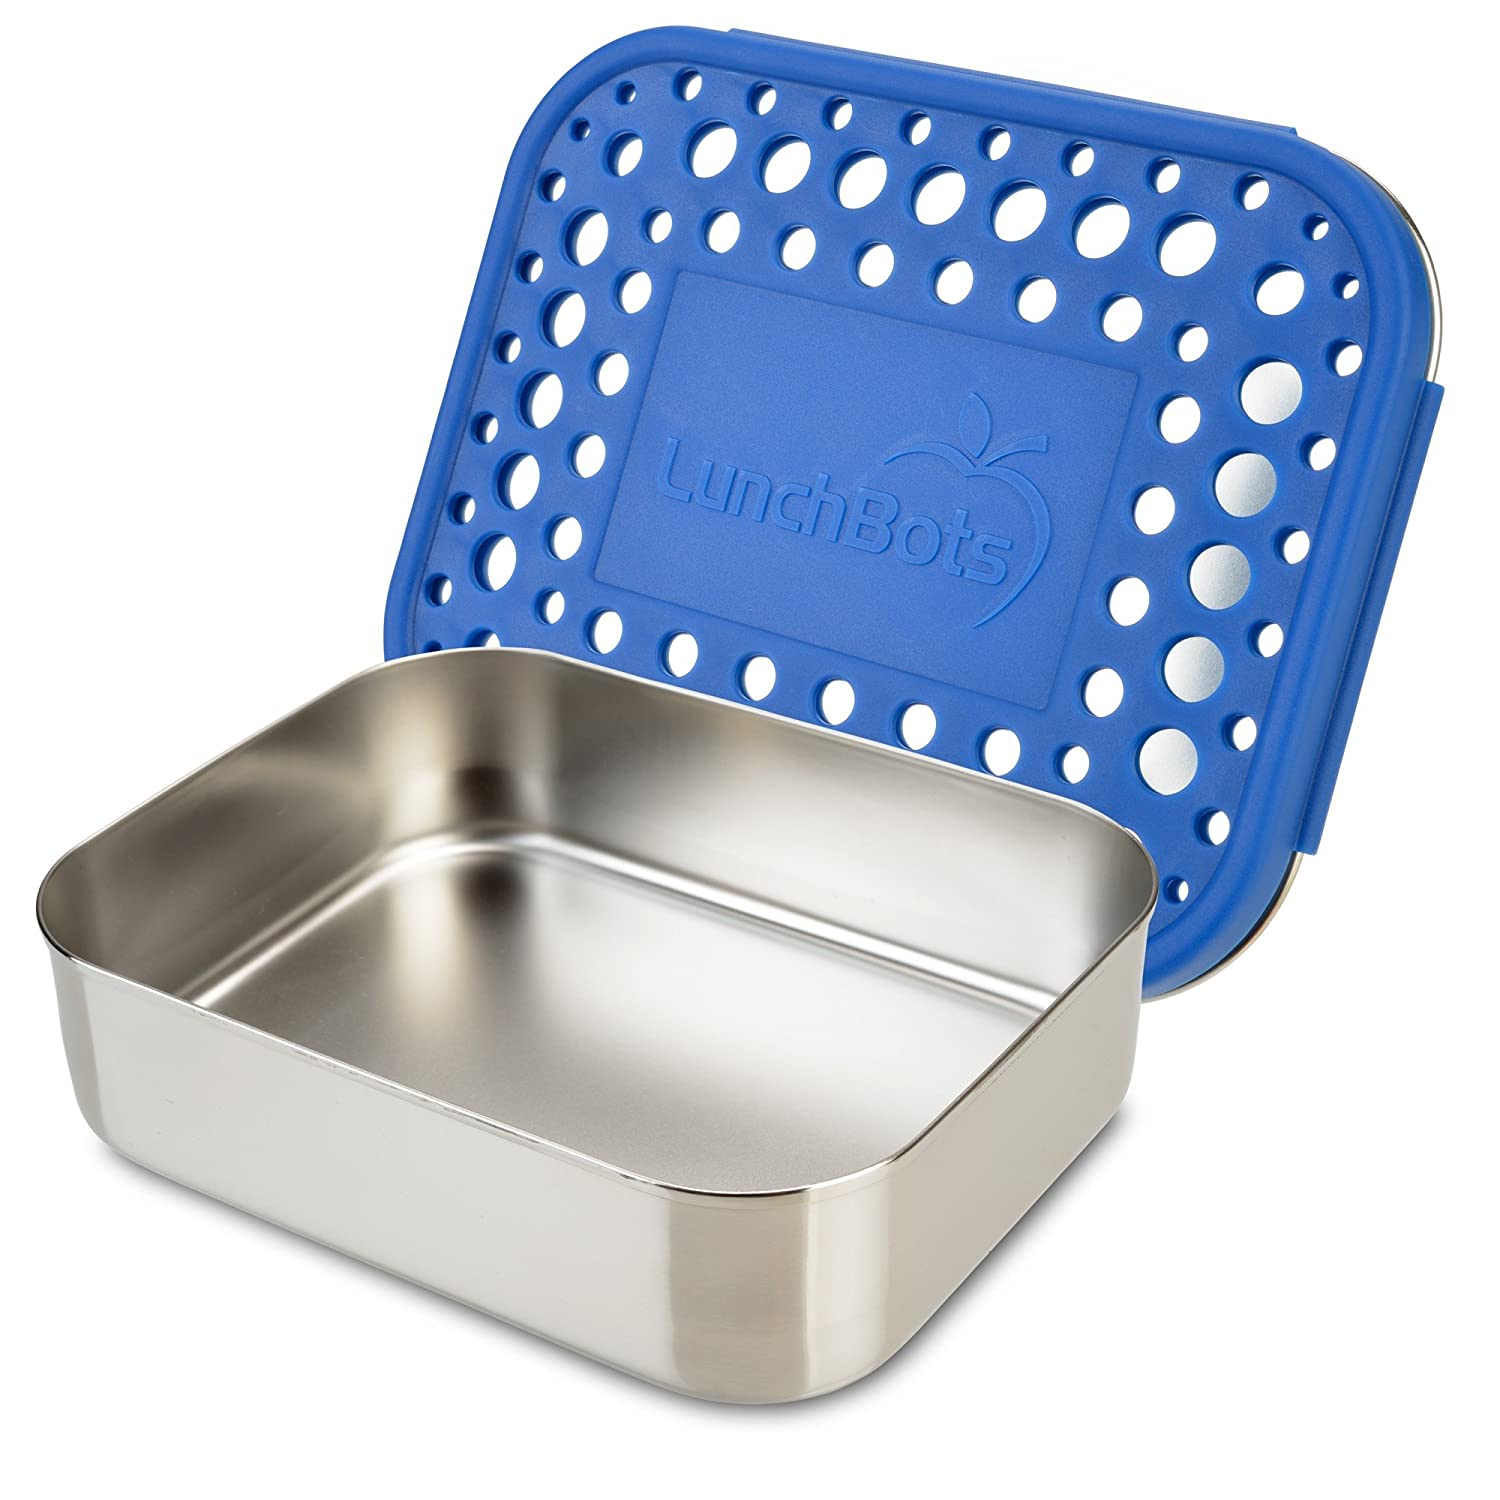 LunchBots Uno Stainless Steel Food Container - Open Design Perfect for Sandwiches, Wraps, Salads or a Small Meal - Eco-Friendly, Dishwasher Safe and BPA-Free - Blue LB-UNO-BLUE-DOTS